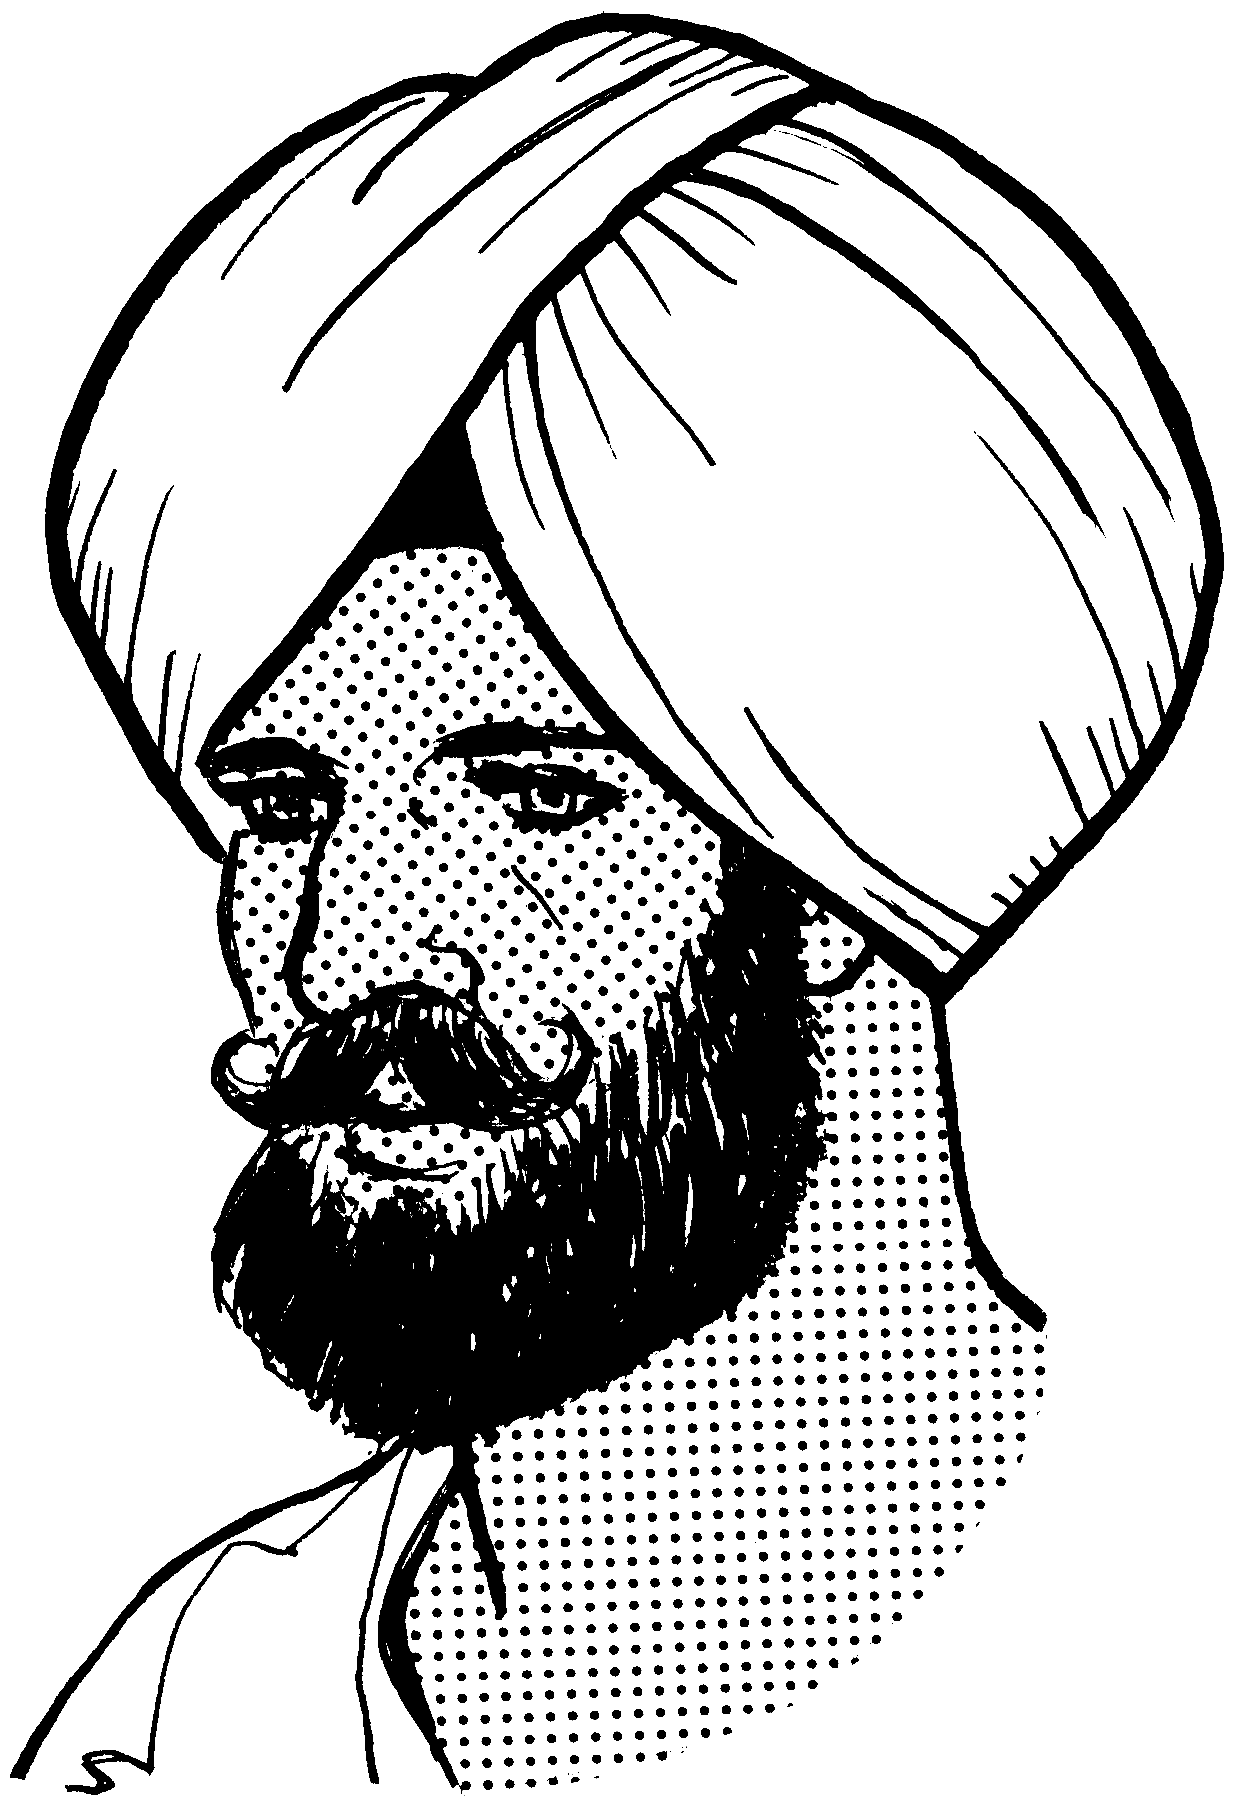 File:Turban (PSF).png - The Work of God's Children